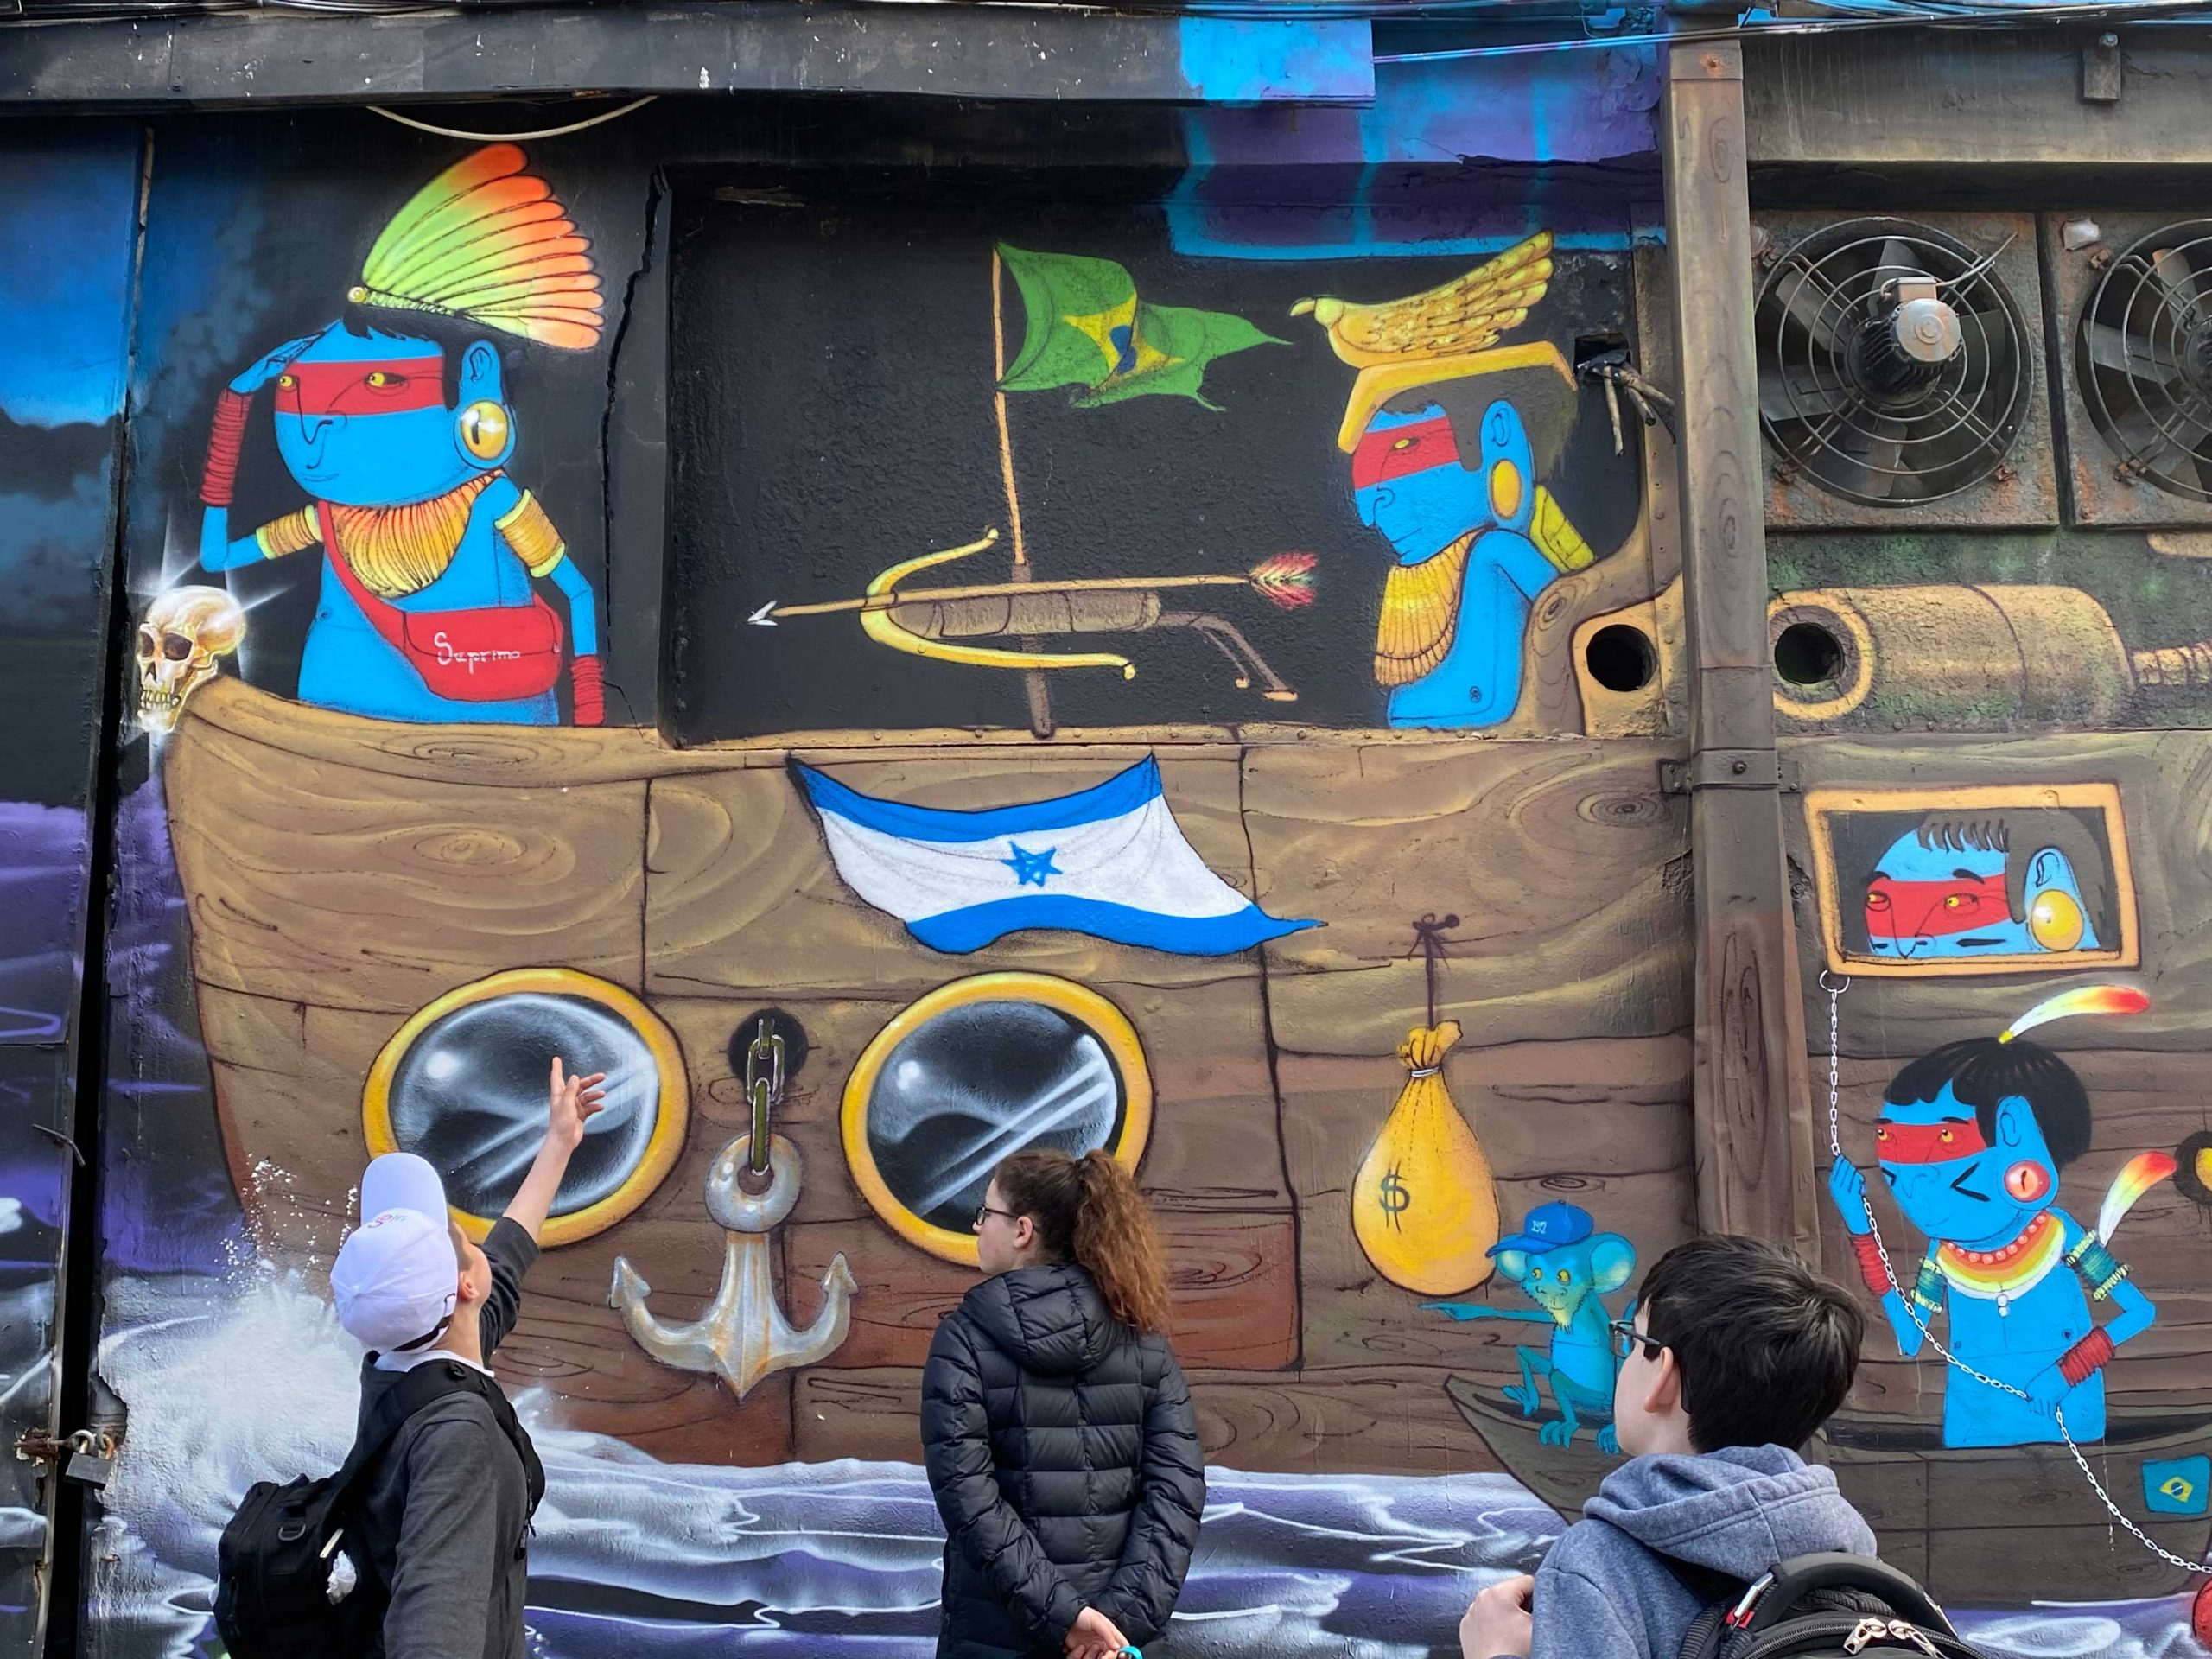 Using Art to Understand and Appreciate Israel's Complexities, at Brandeis Marin